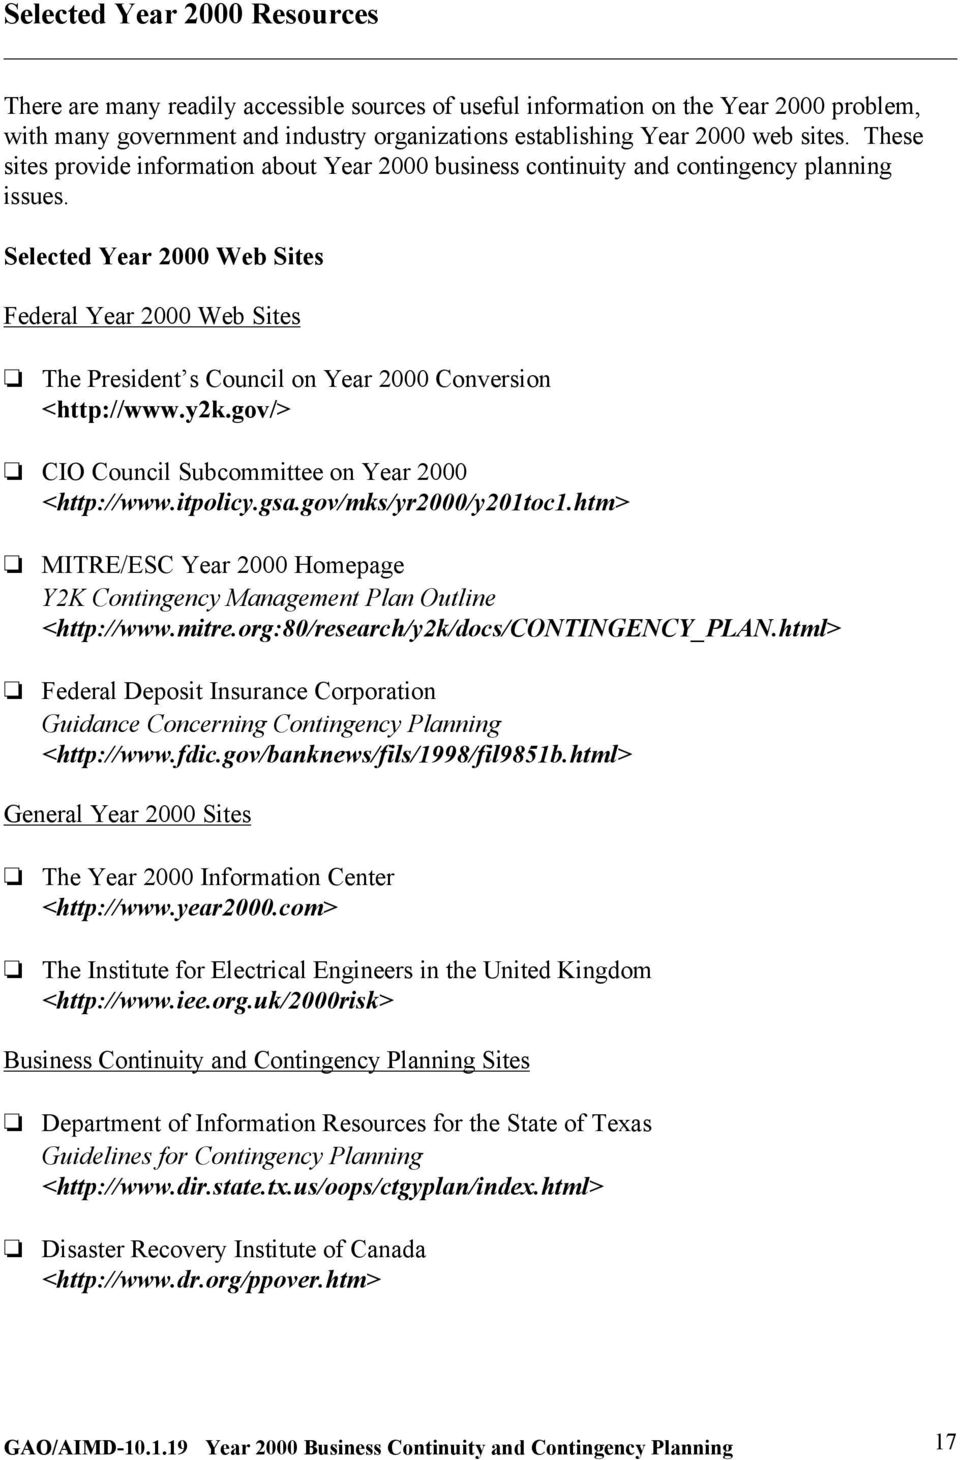 Selected Year 2000 Web Sites Federal Year 2000 Web Sites The President s Council on Year 2000 Conversion <http://www.y2k.gov/> CIO Council Subcommittee on Year 2000 <http://www.itpolicy.gsa.